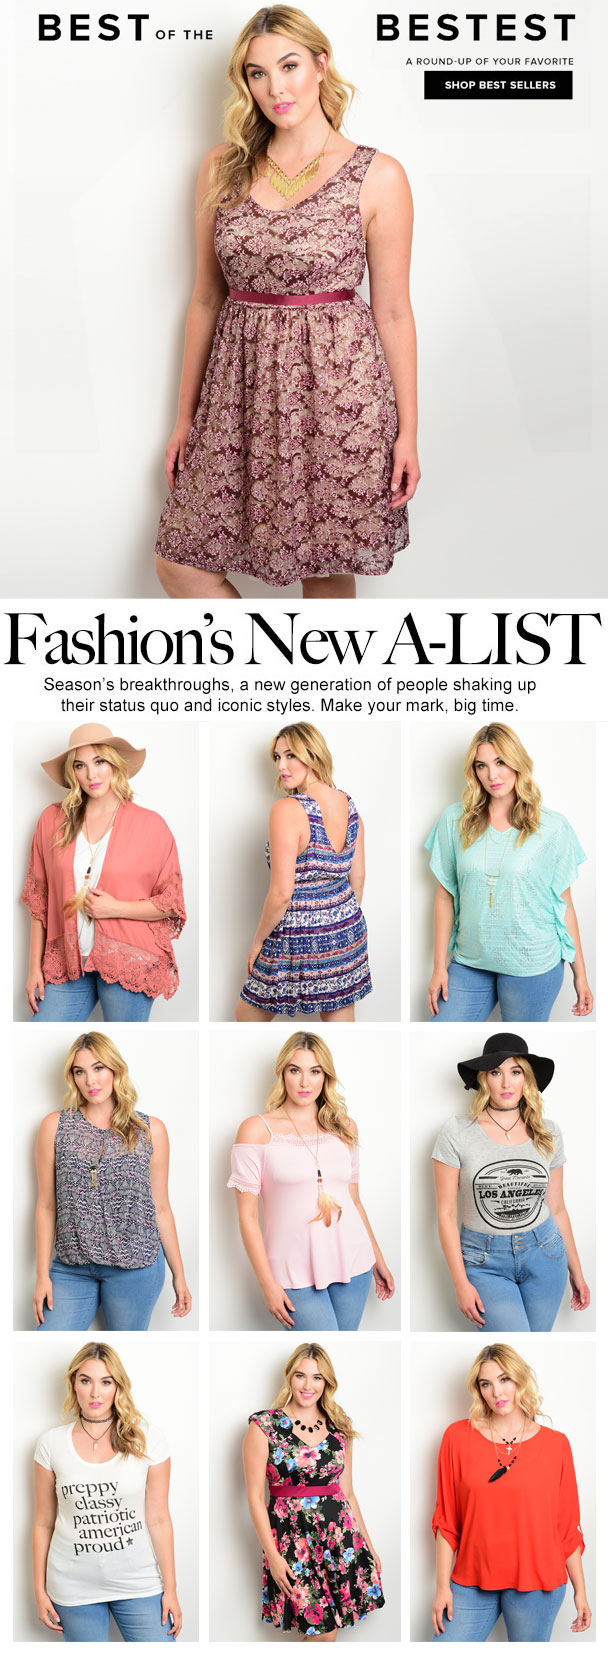 Here are some styles from Wholesale Fashion Square that are flying off our virtual rack. Get on it now before it's too late! Shop plus size now at wholesalefashionsquare.com